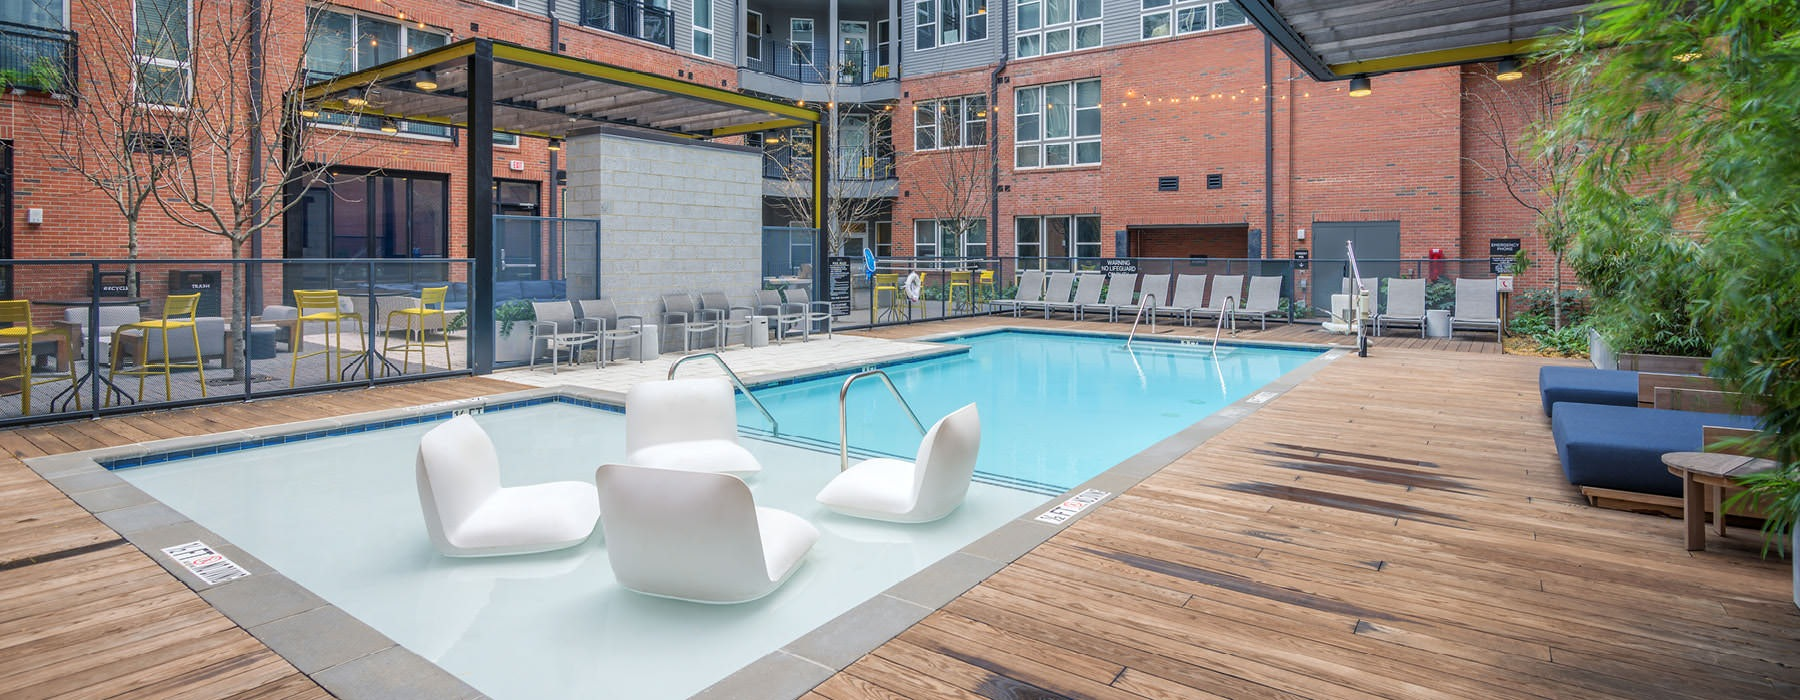 outdoor swimming pool with in-pool lounge chairs